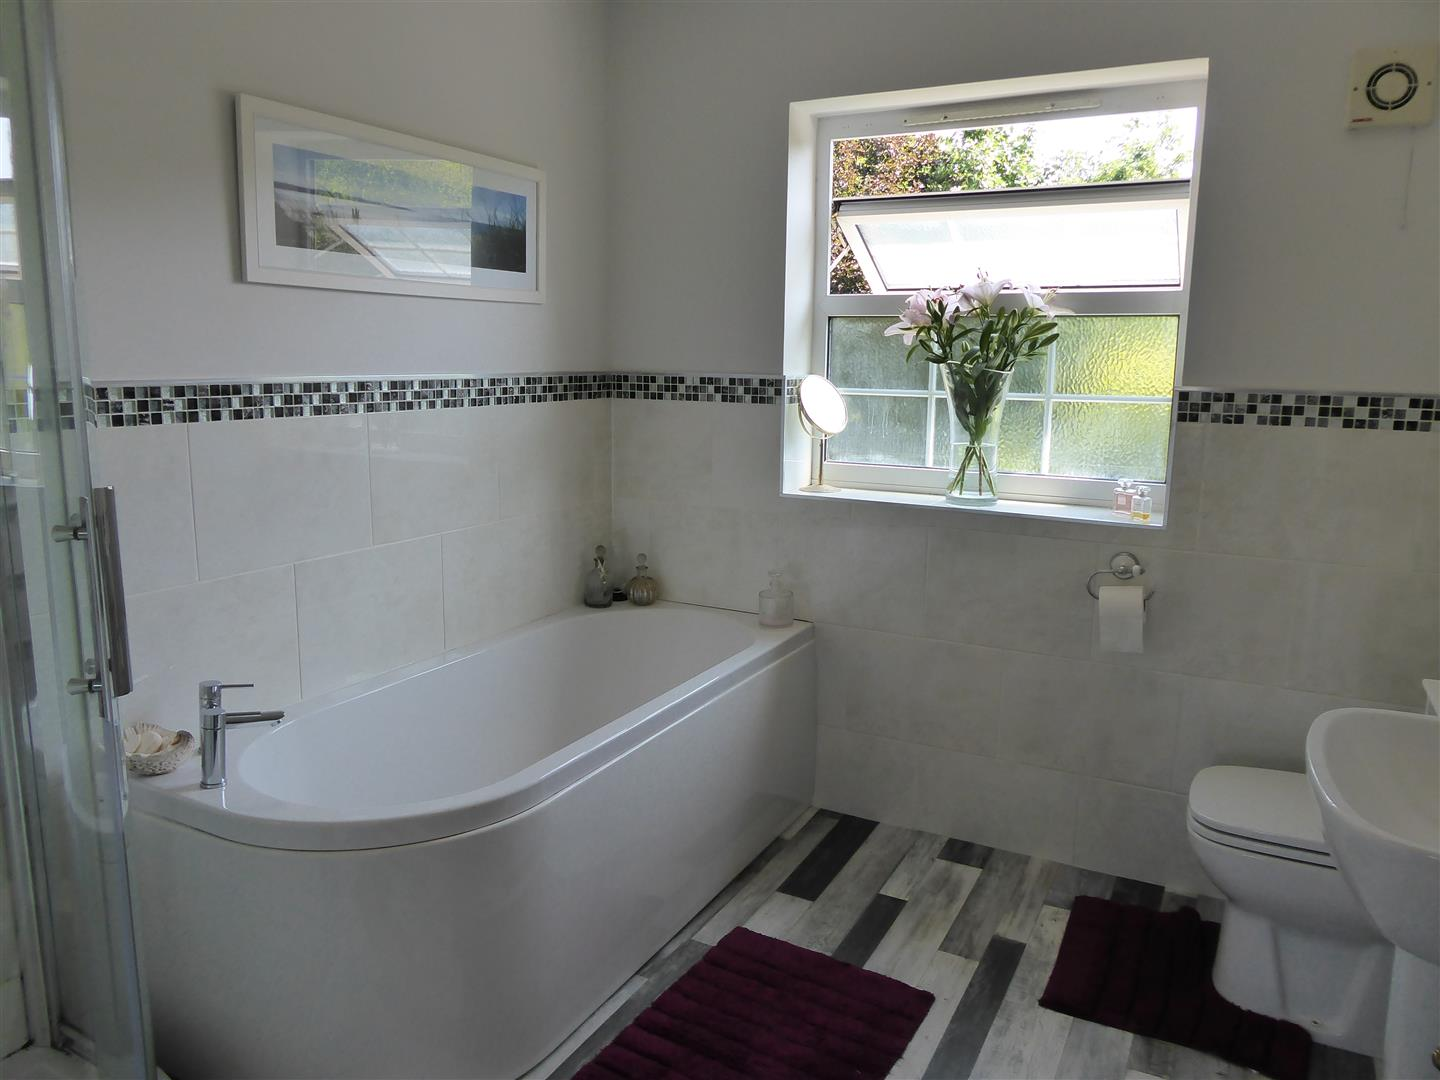 EN SUITE BATHROOM/WC